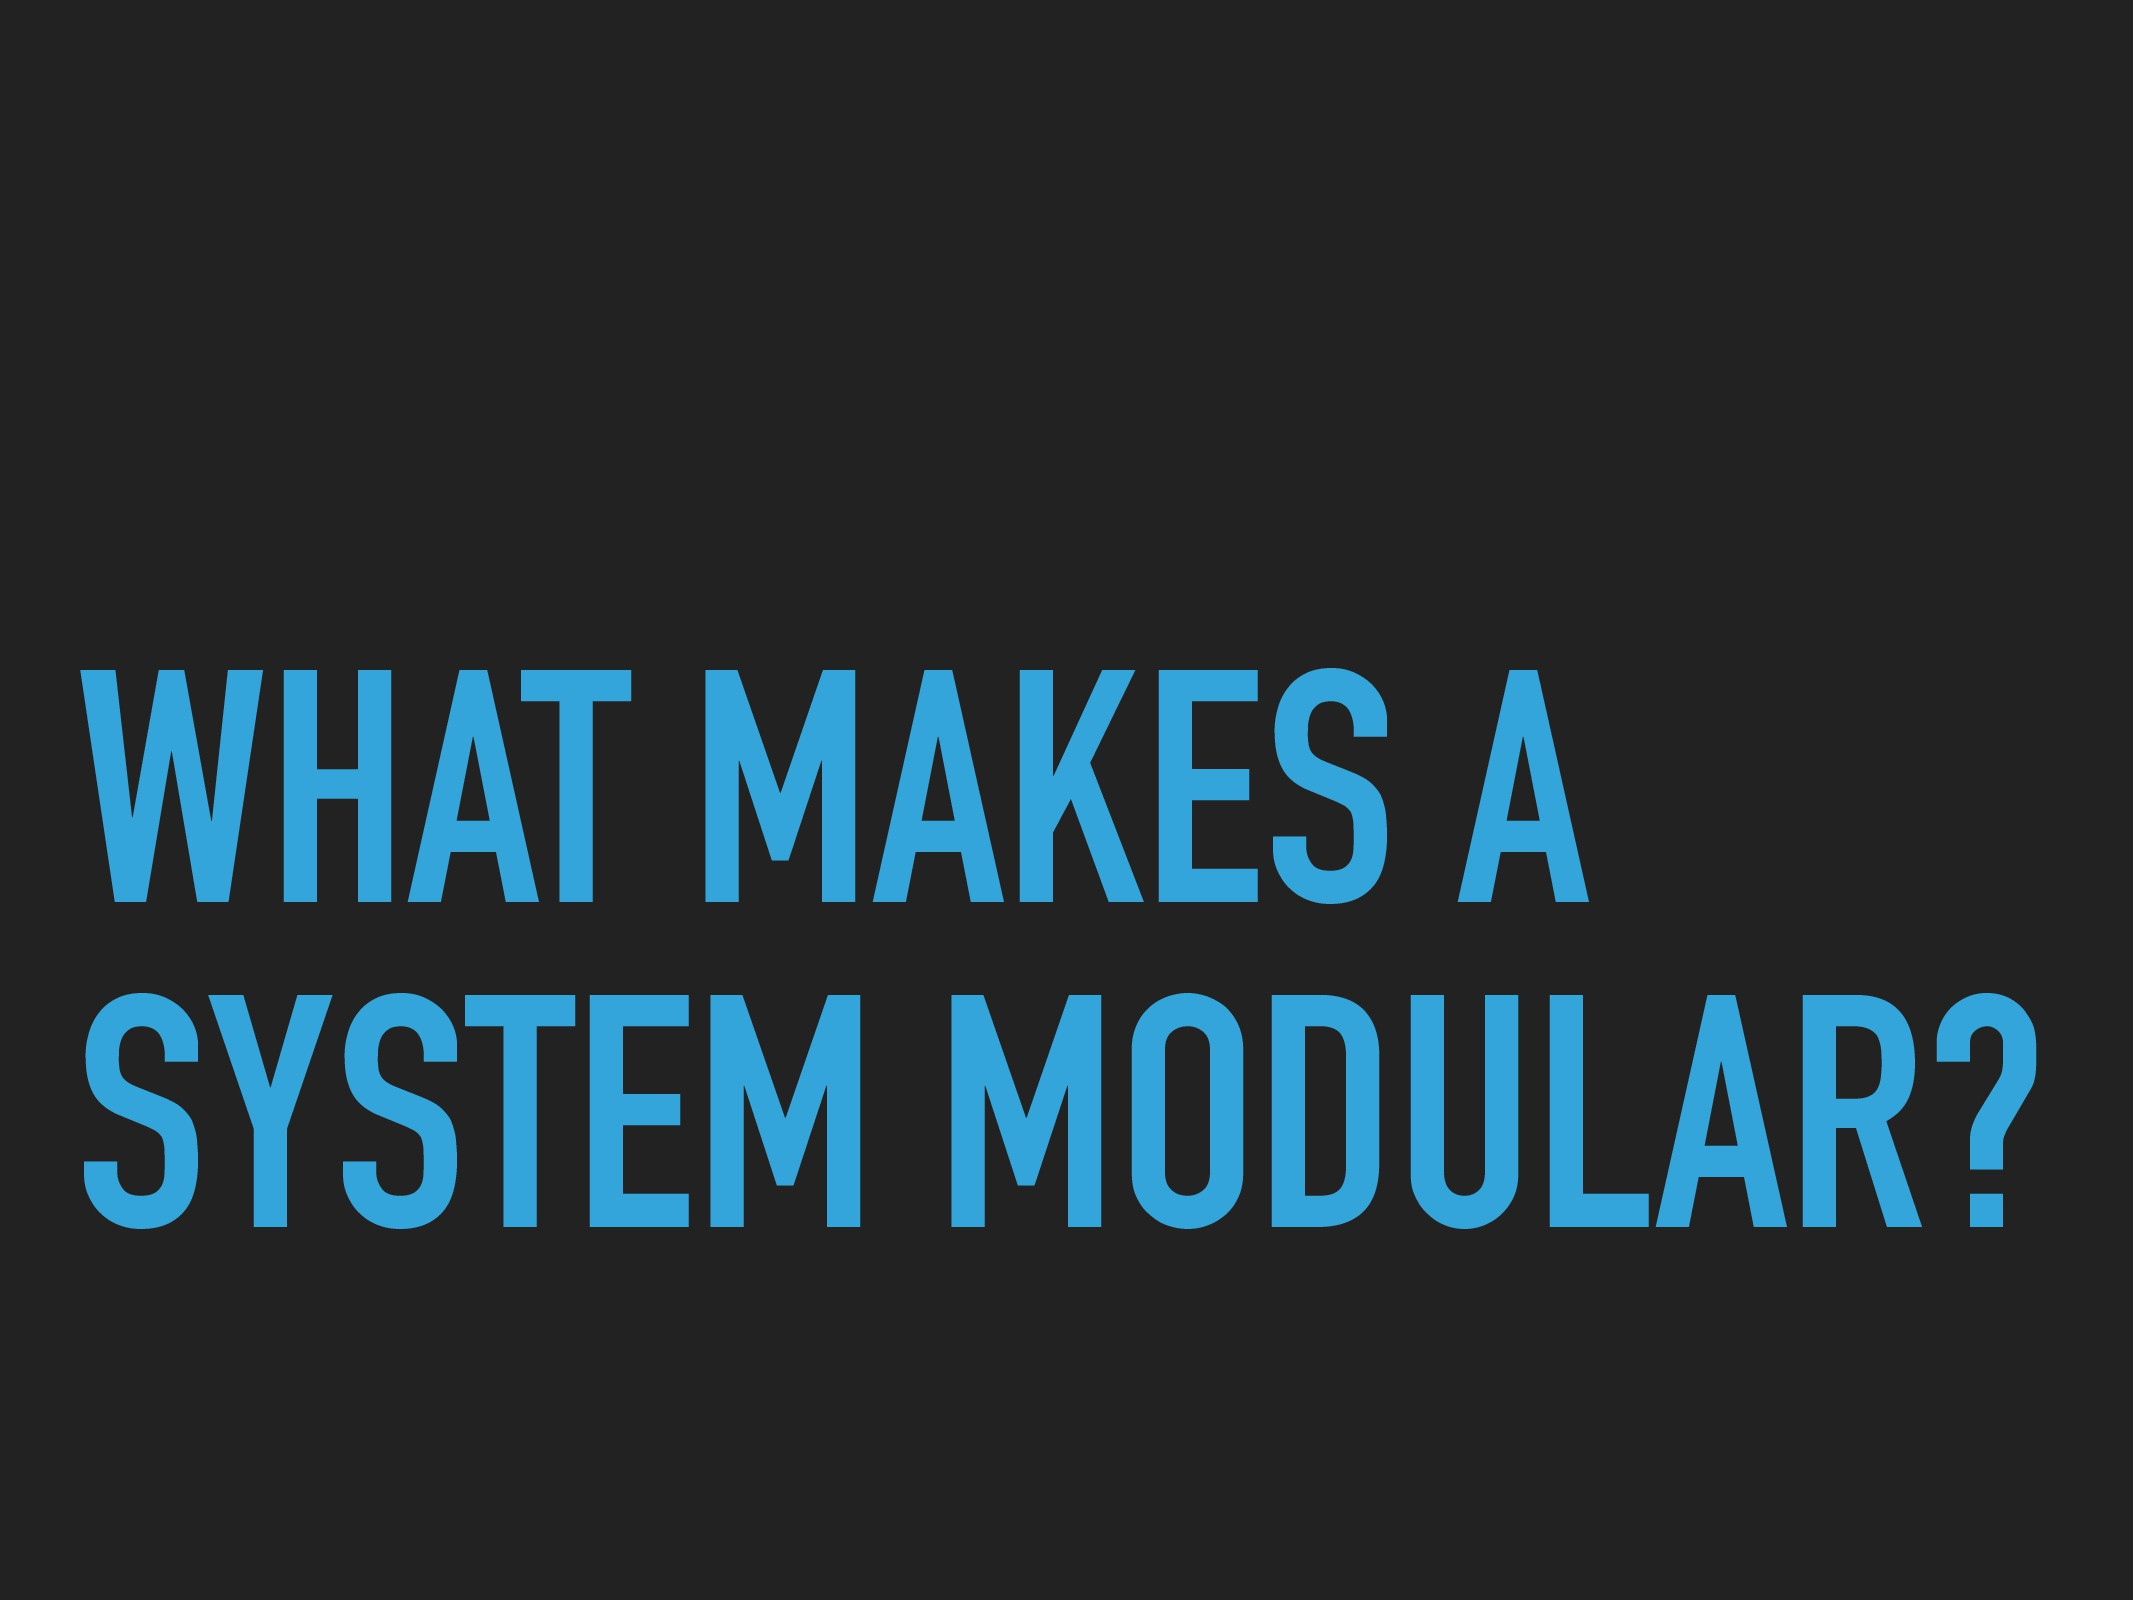 WHAT MAKES A SYSTEM MODULAR?